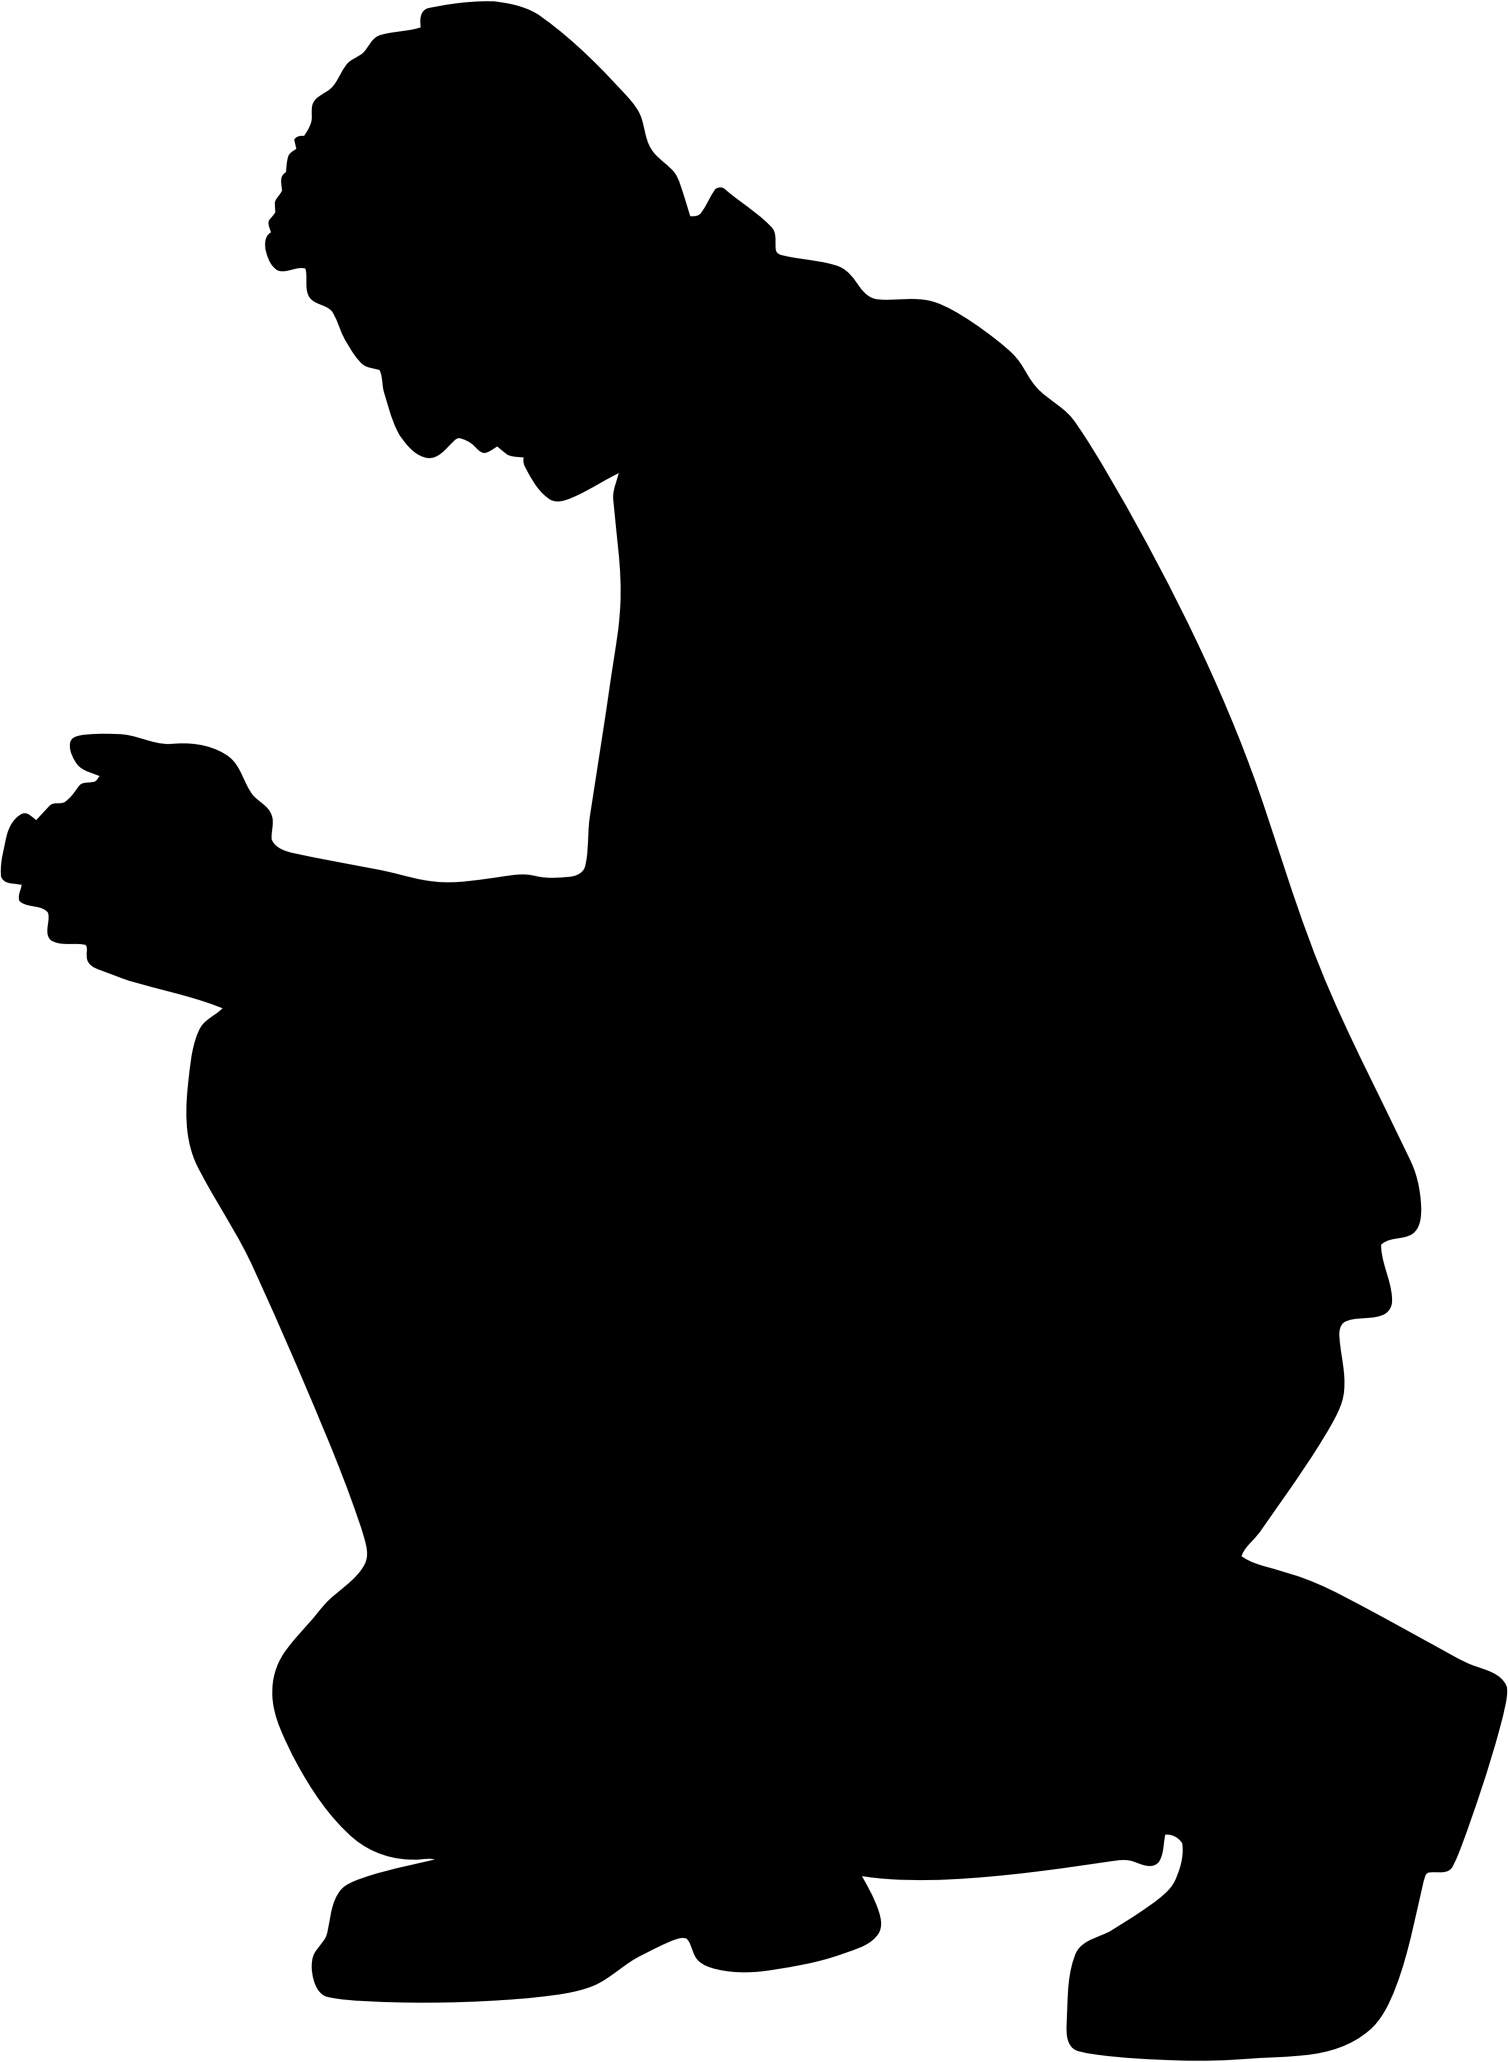 Silhouette Of People Praying at GetDrawings.com | Free for ...